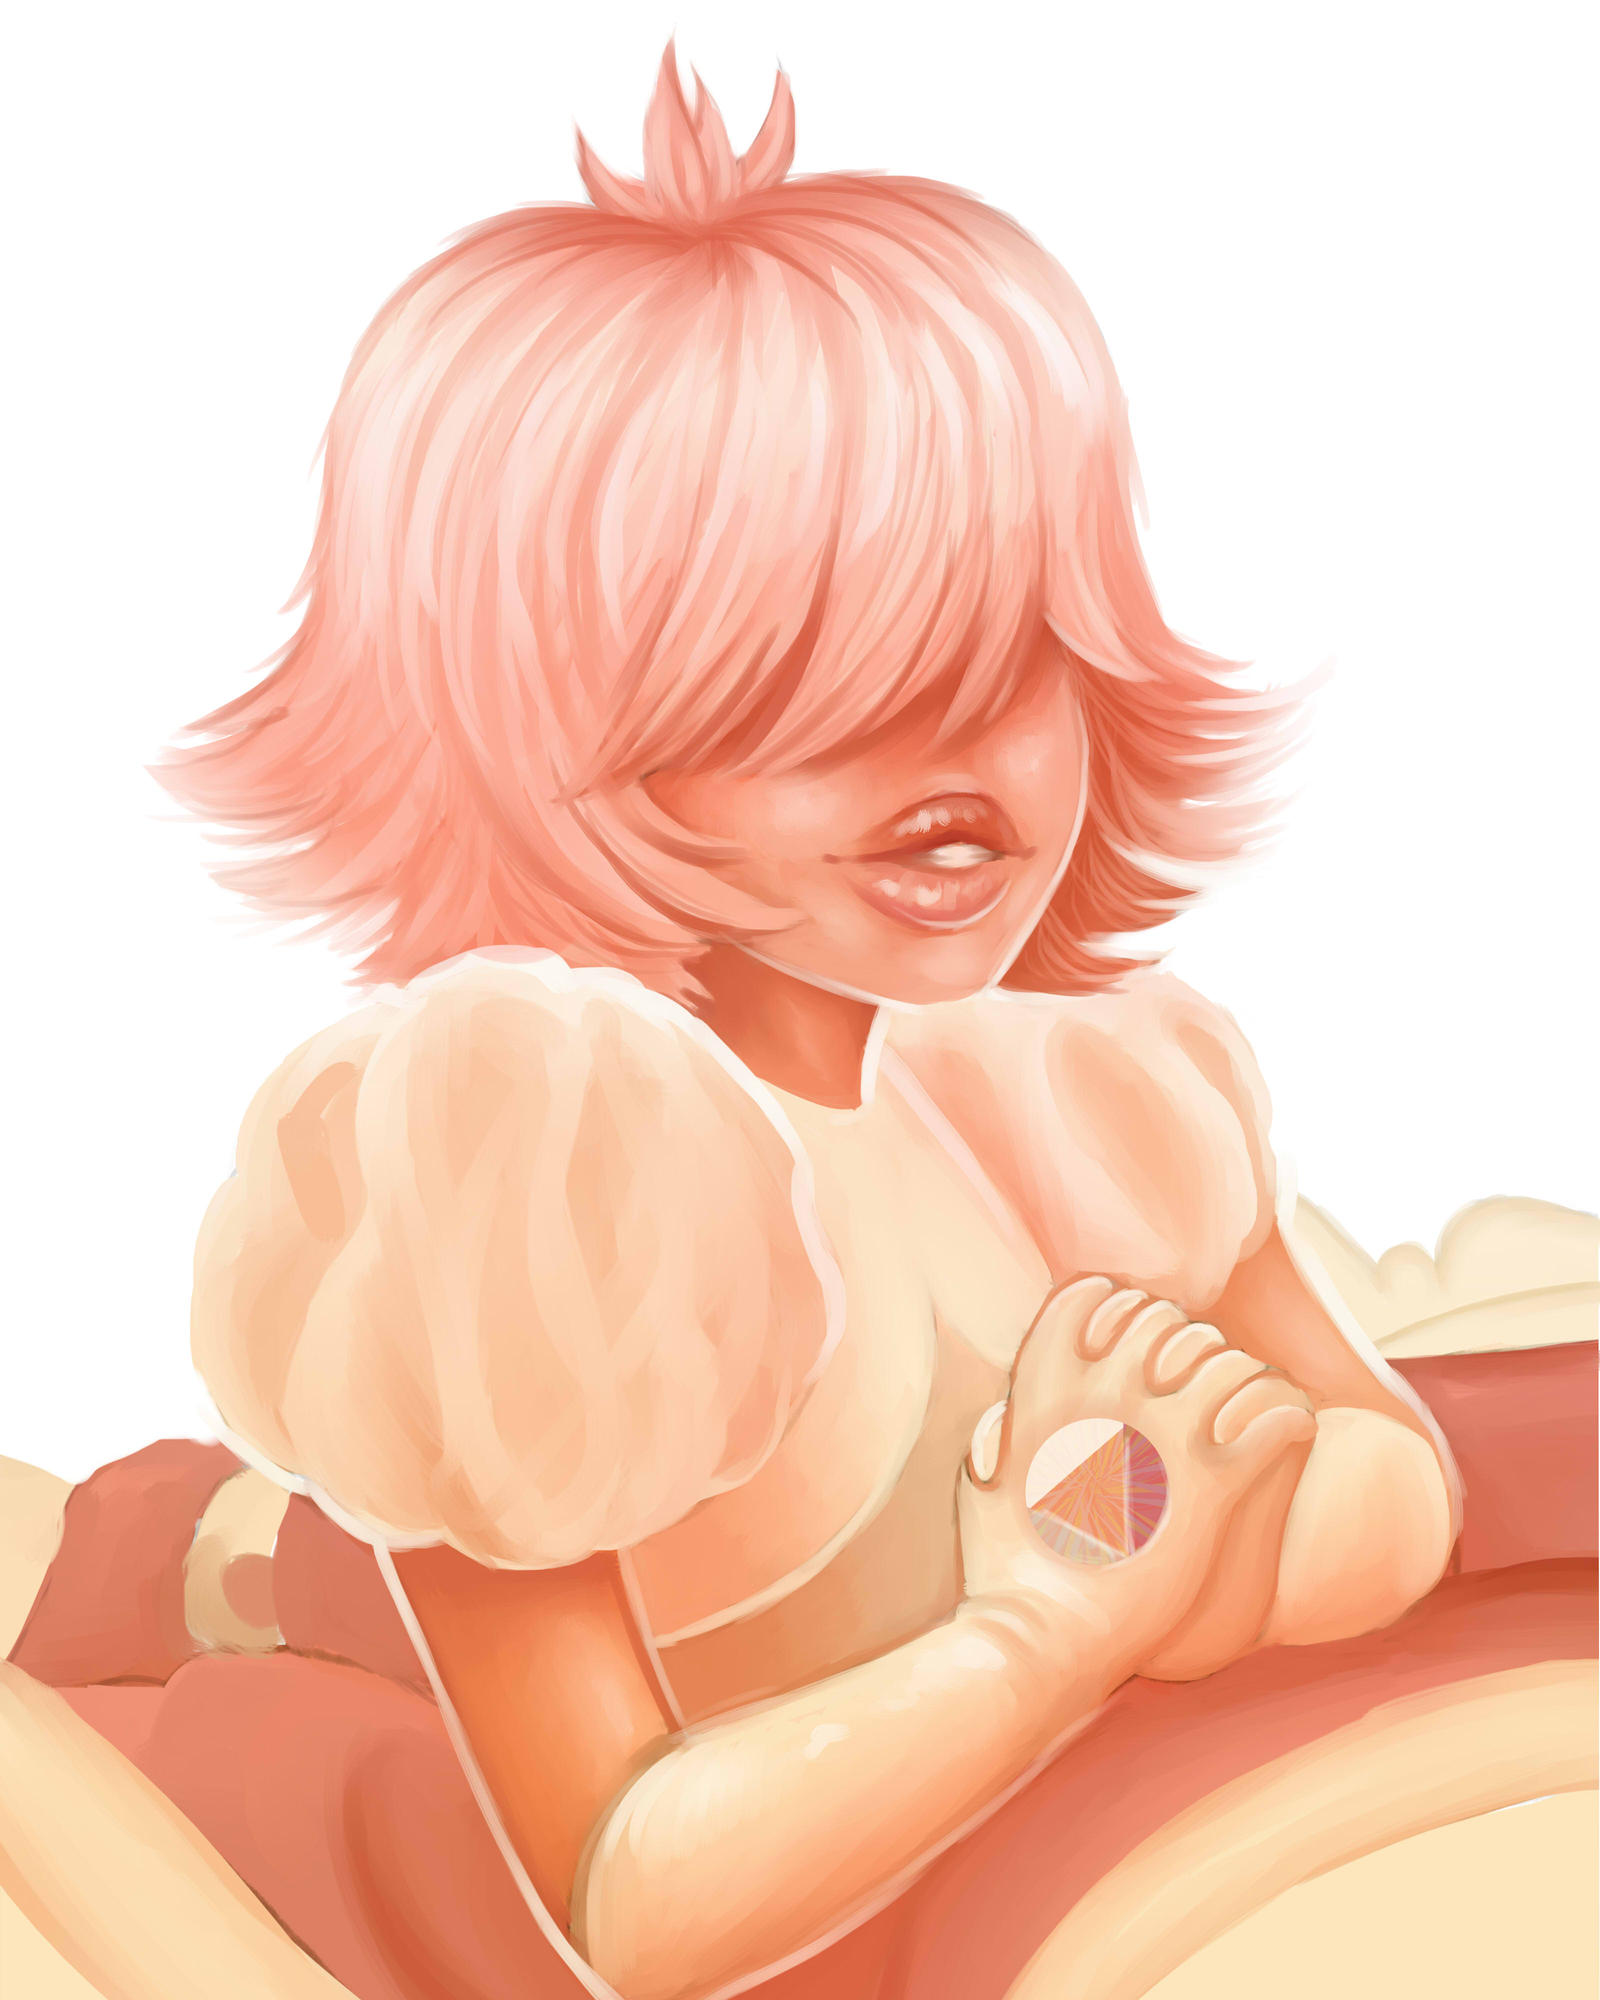 padparadscha sapphire joleremerald art by perfect pad universe steven the